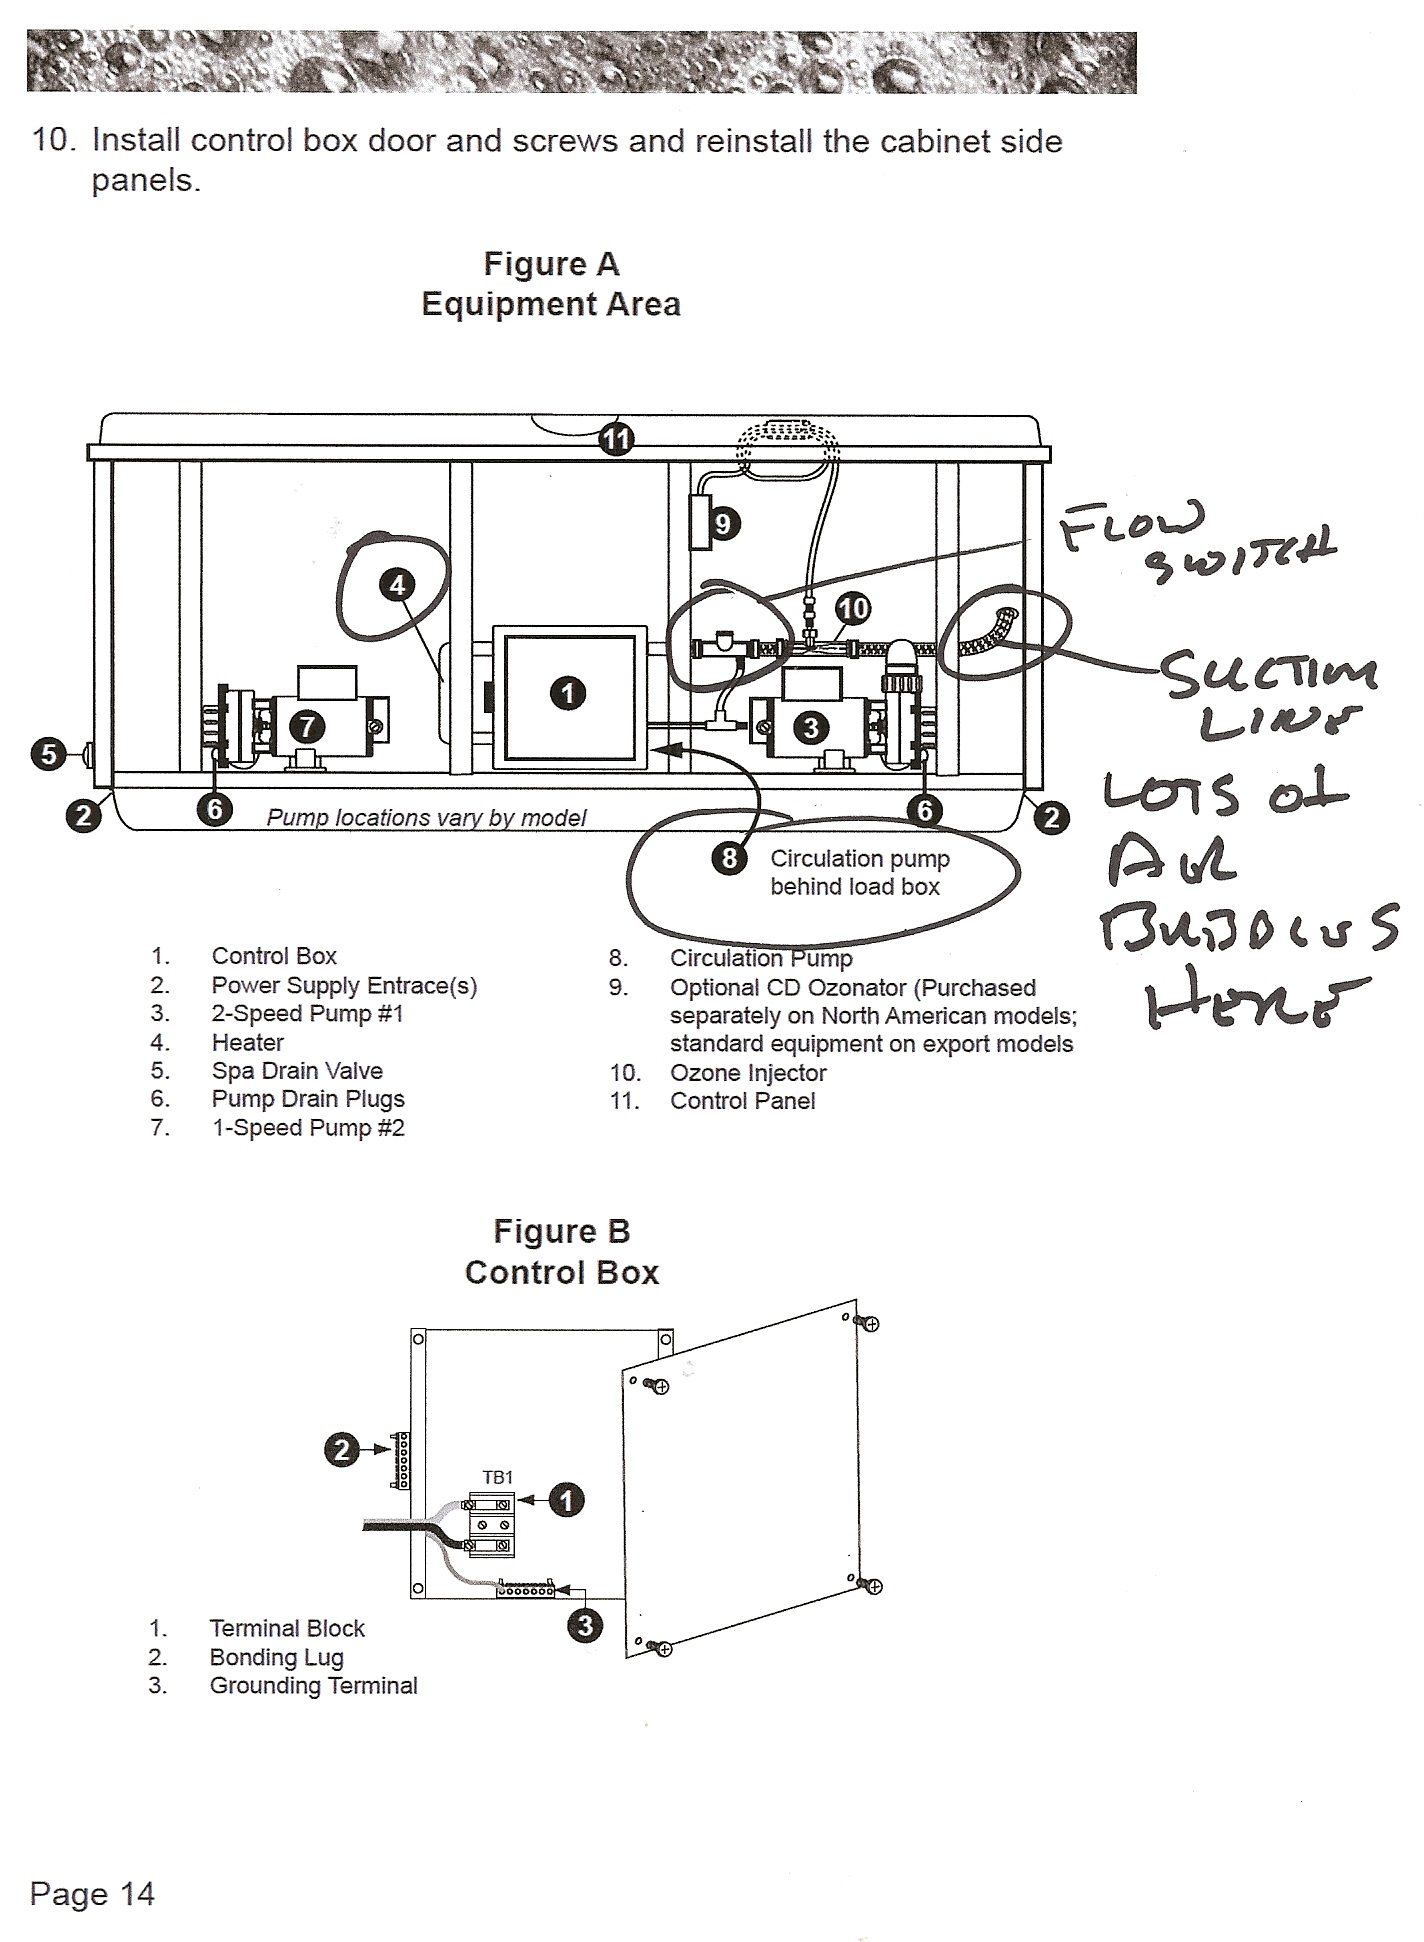 Hot Tub Electrical Switches Likewise Wiring A Hot Tub Gfci Disconnect